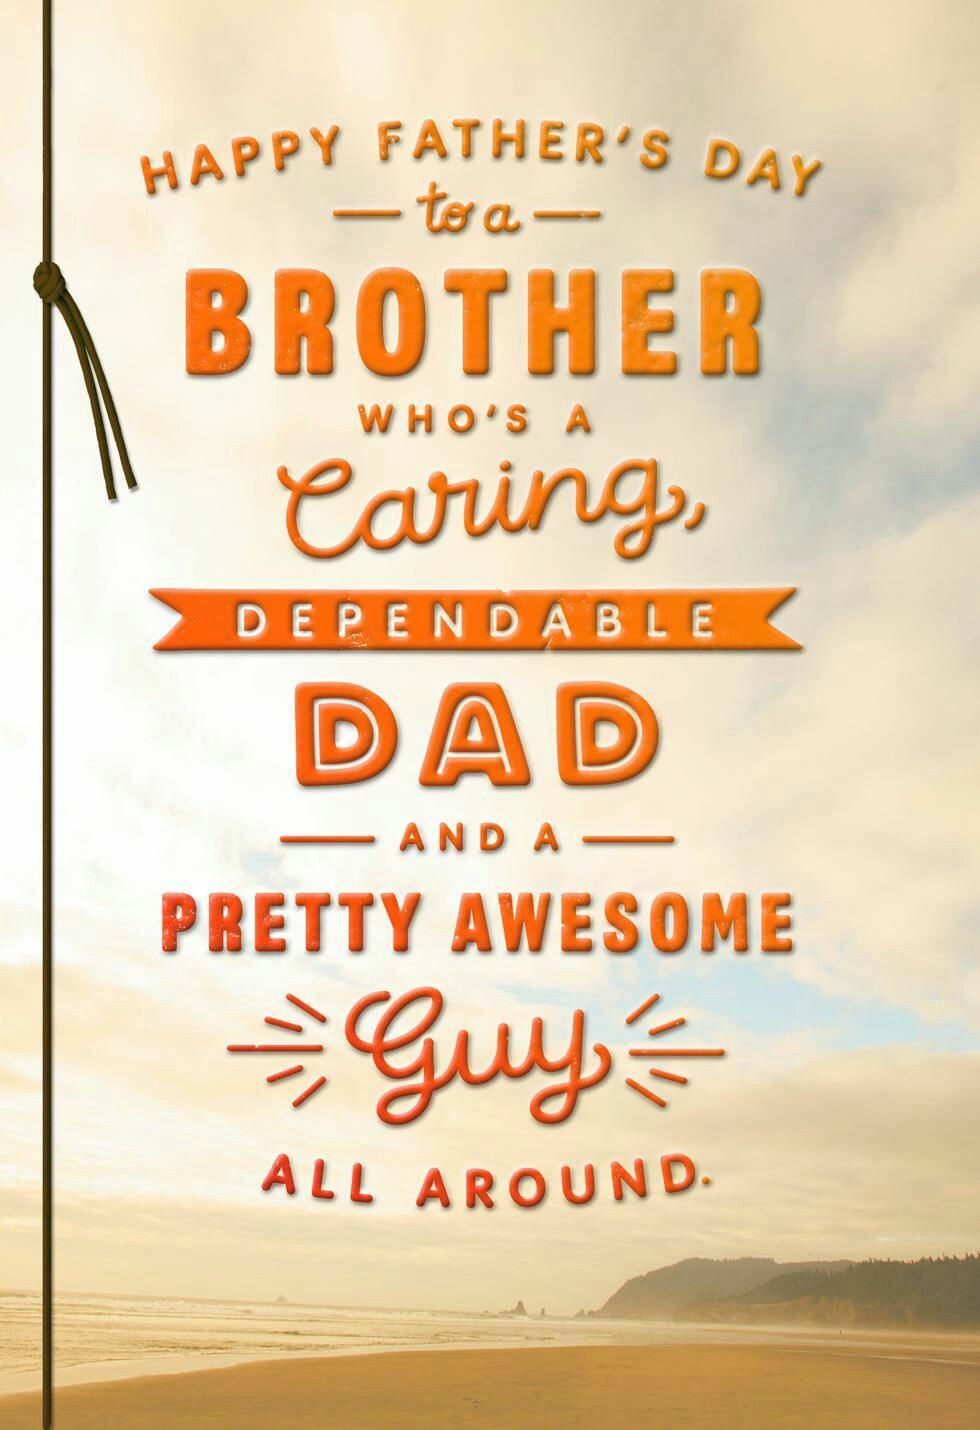 Ideas Fathers Day Diy Mothers Day Crafts Inspirational Fathers Day Quotes Sipandpaint Happy Father Day Quotes Happy Fathers Day Brother Fathers Day Images